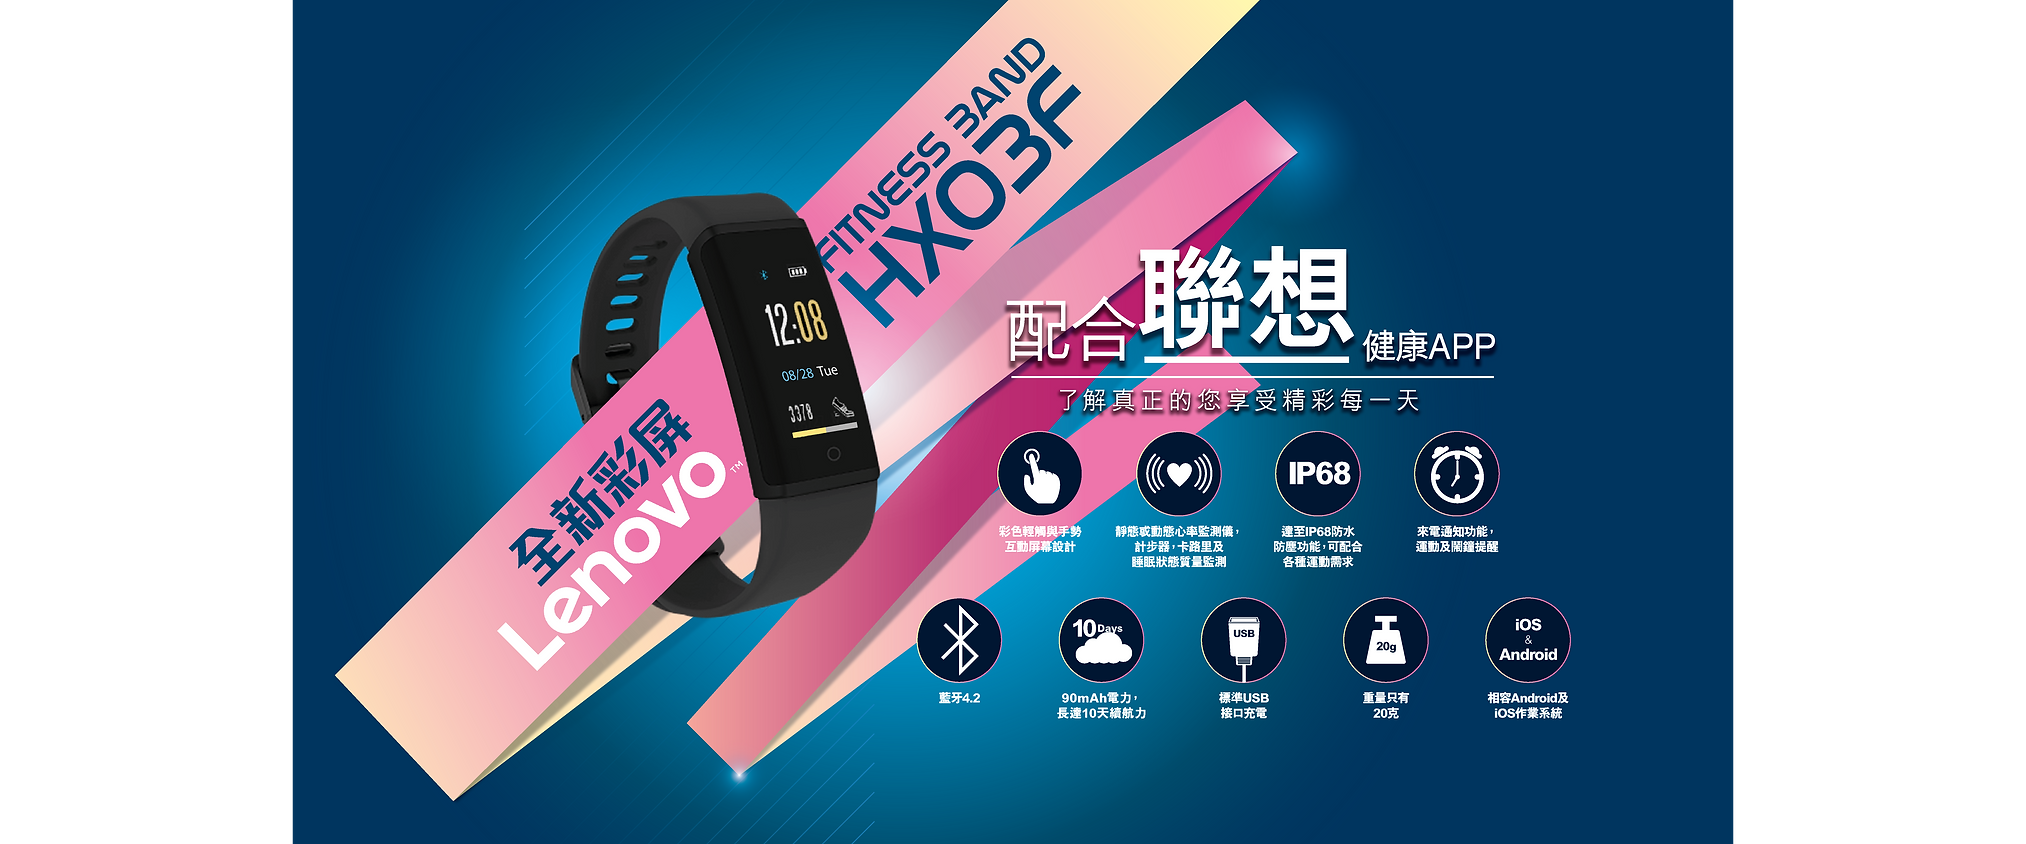 D1 Lenovo Fitness Band HX03F-03.png